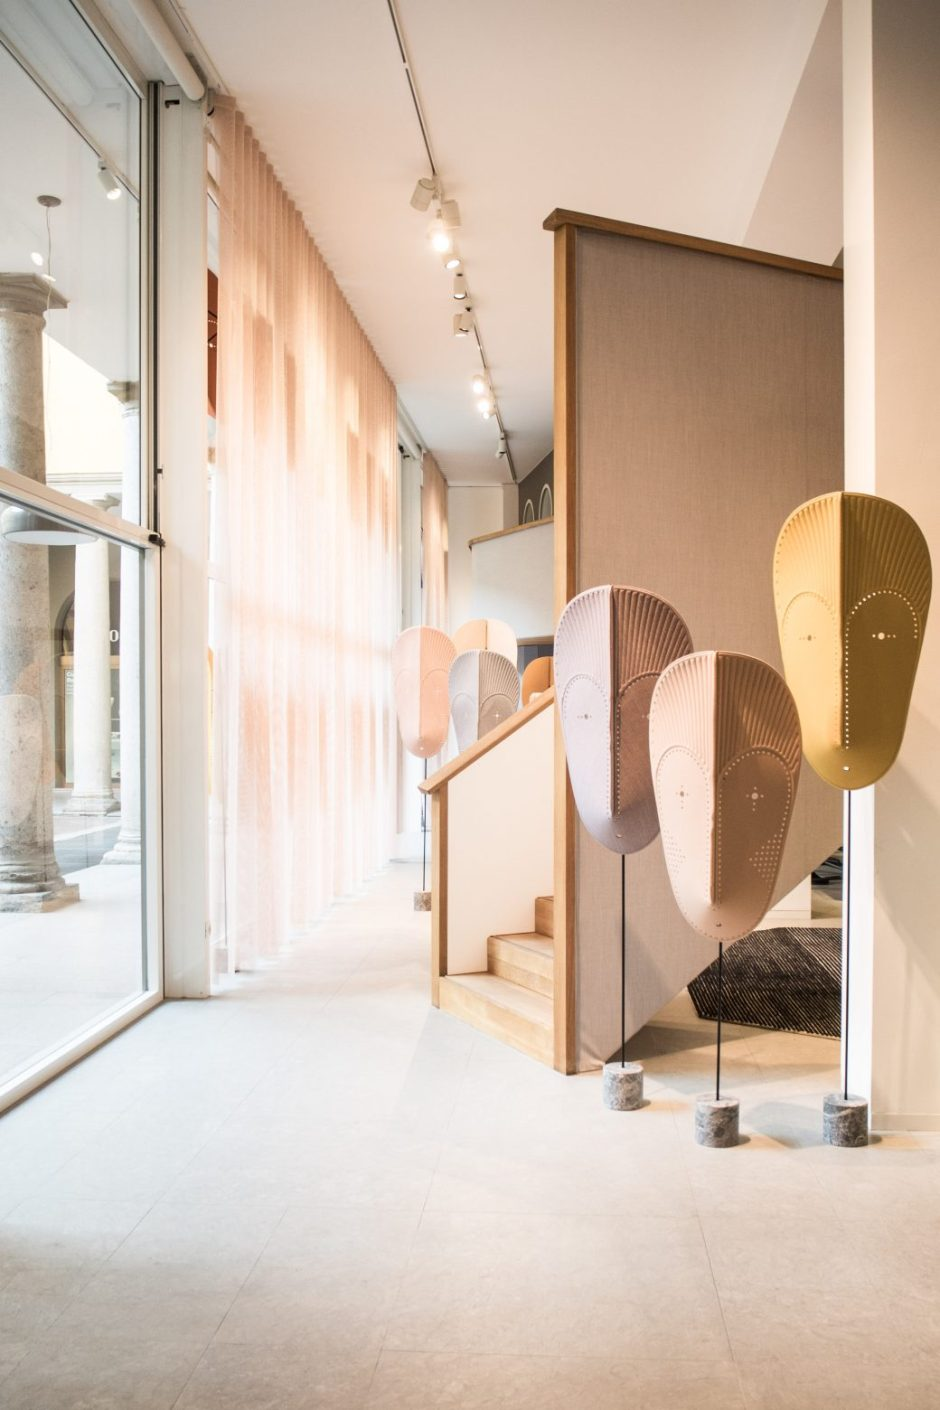 Milan Design Week Trends + Highlights You Need To Know